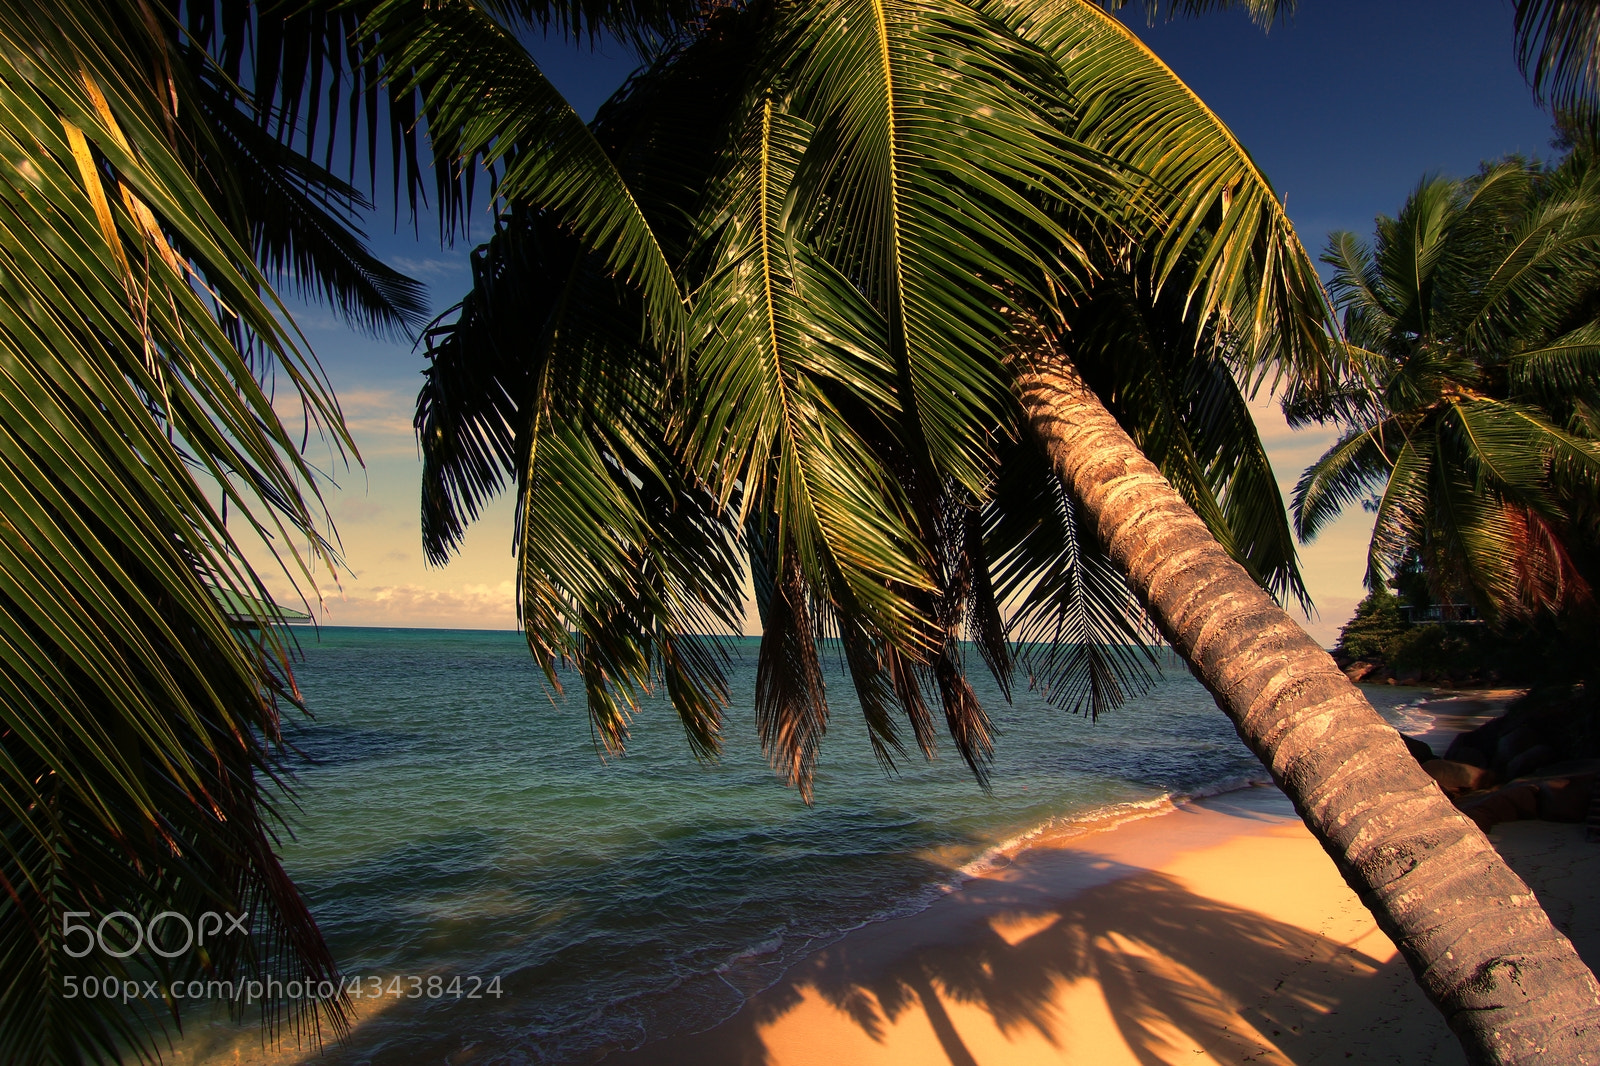 Photograph Sunset palm by Andrei Fried on 500px